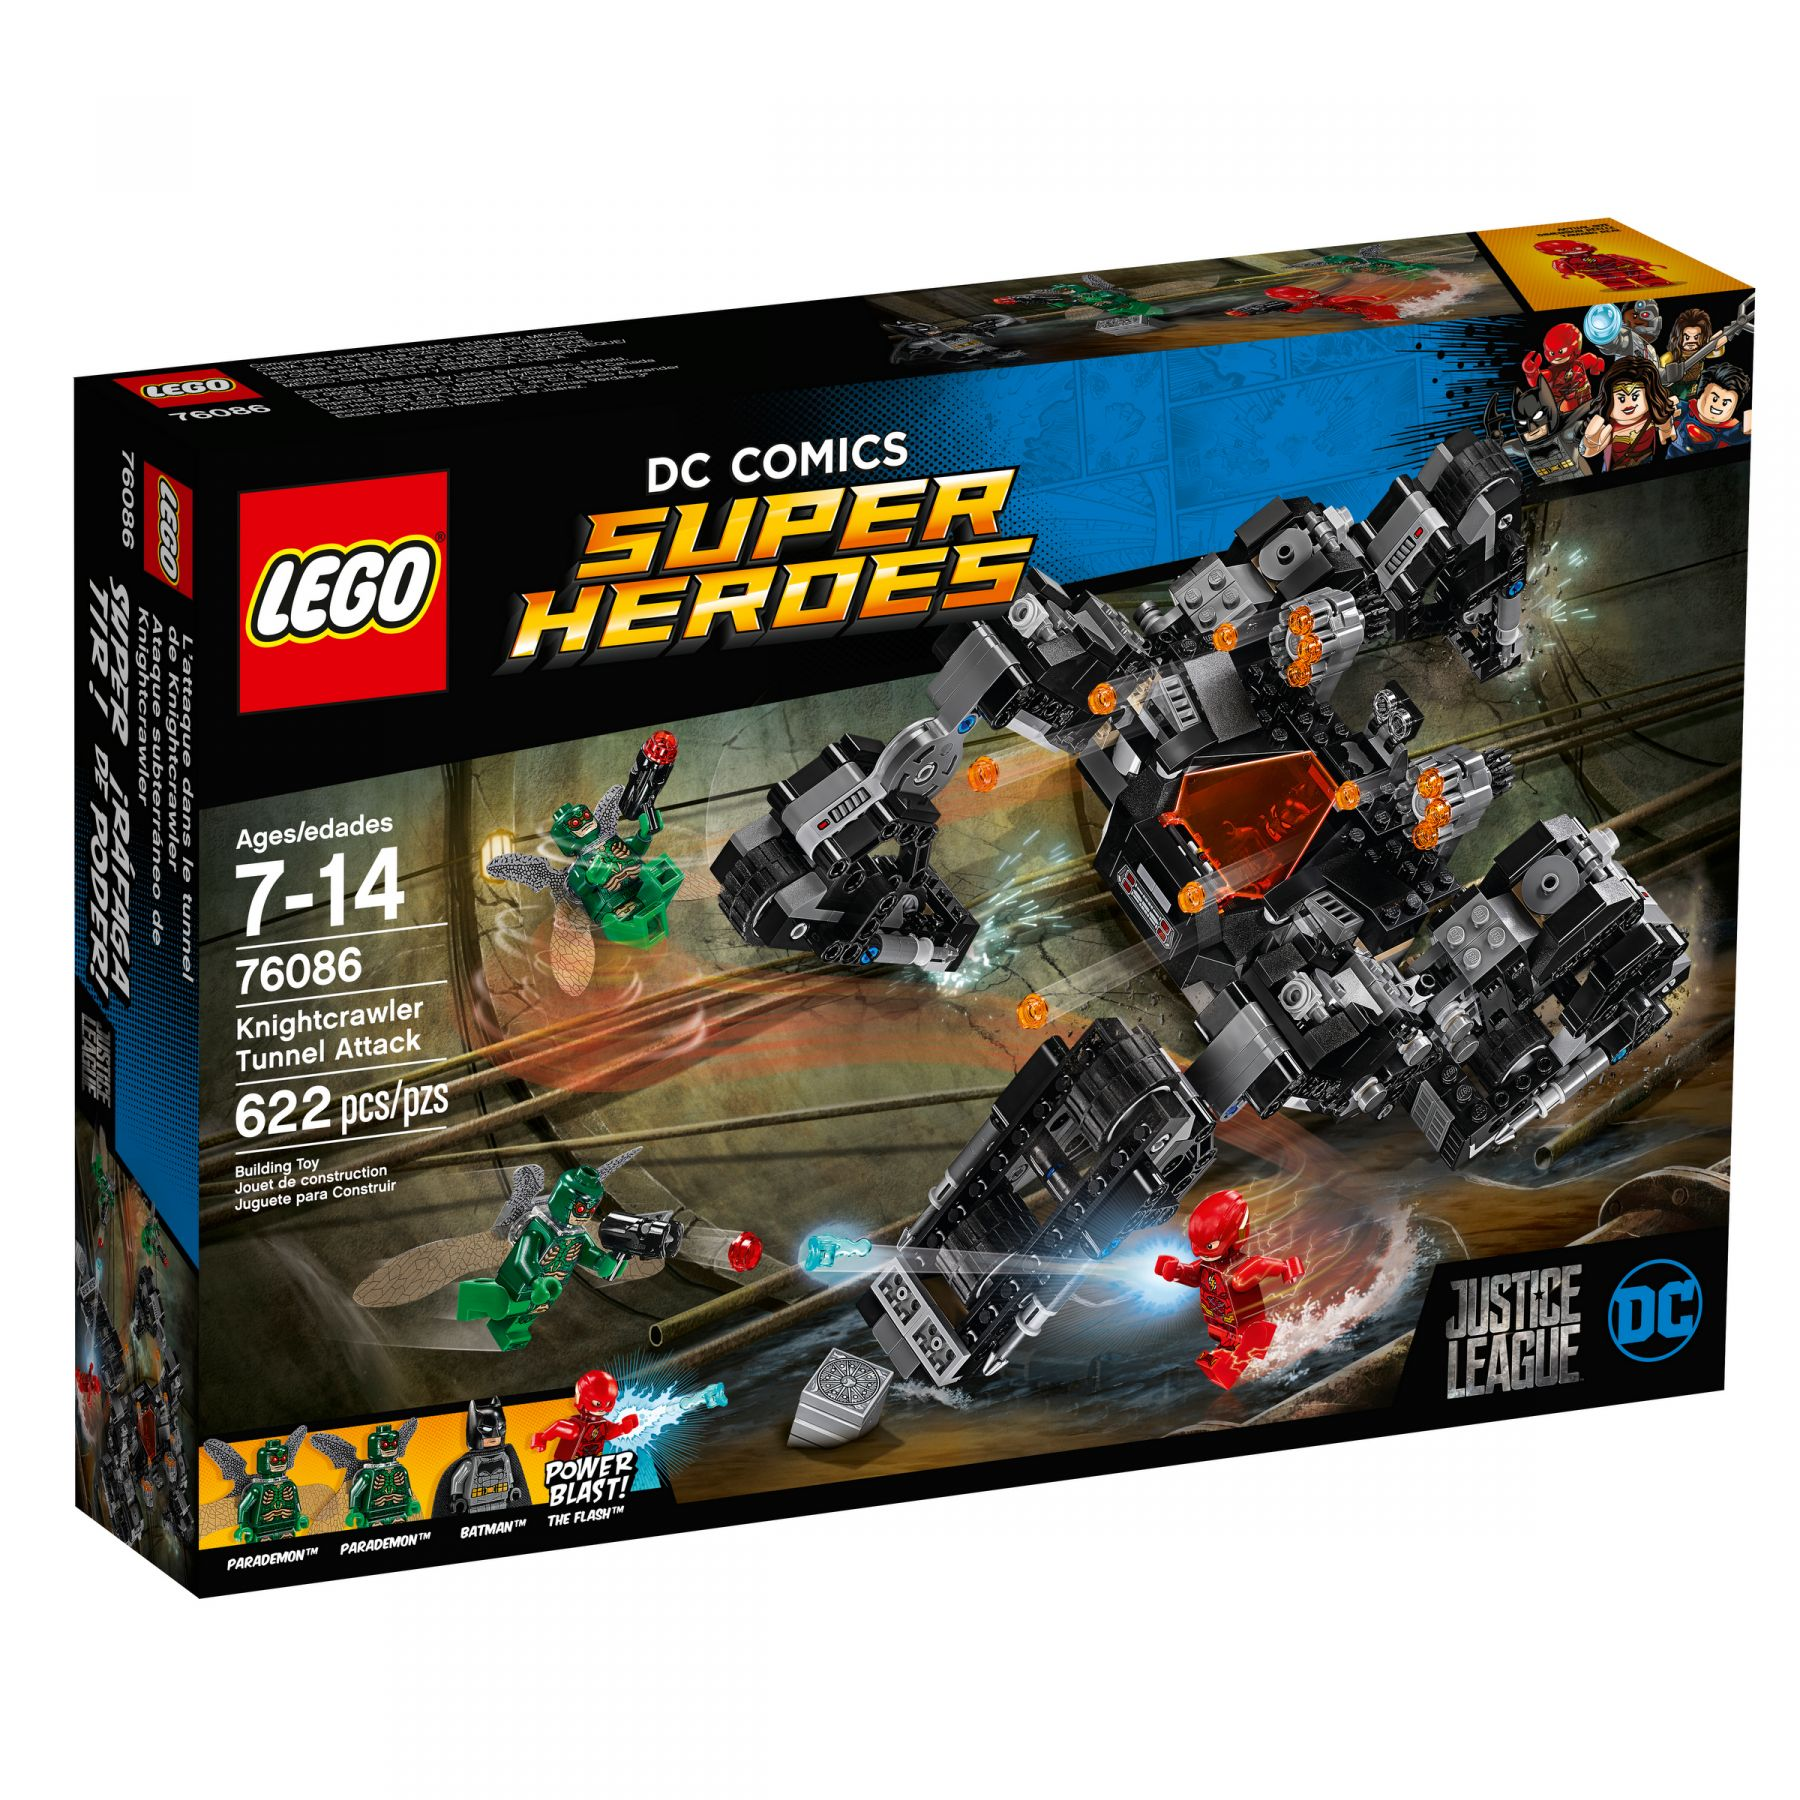 LEGO Super Heroes 76086 Knightcrawlers Tunnel-Attacke LEGO_76086_alt1.jpg